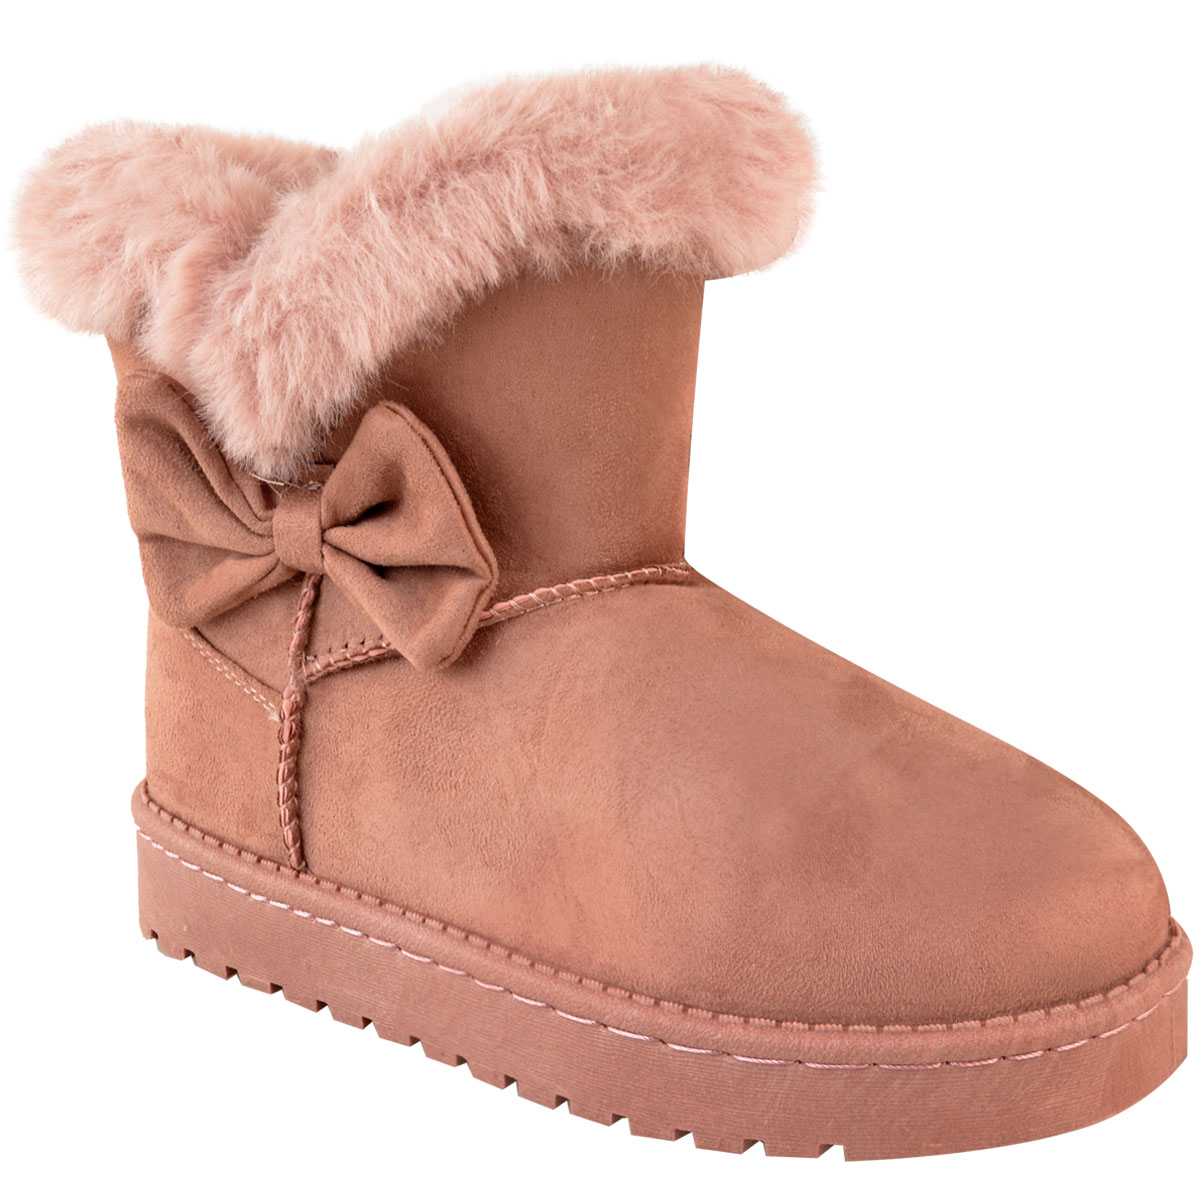 6e143e8696b63 Girls Kids Childrens Flat Winter Faux Fur Ankle Boots Warm Snow ...